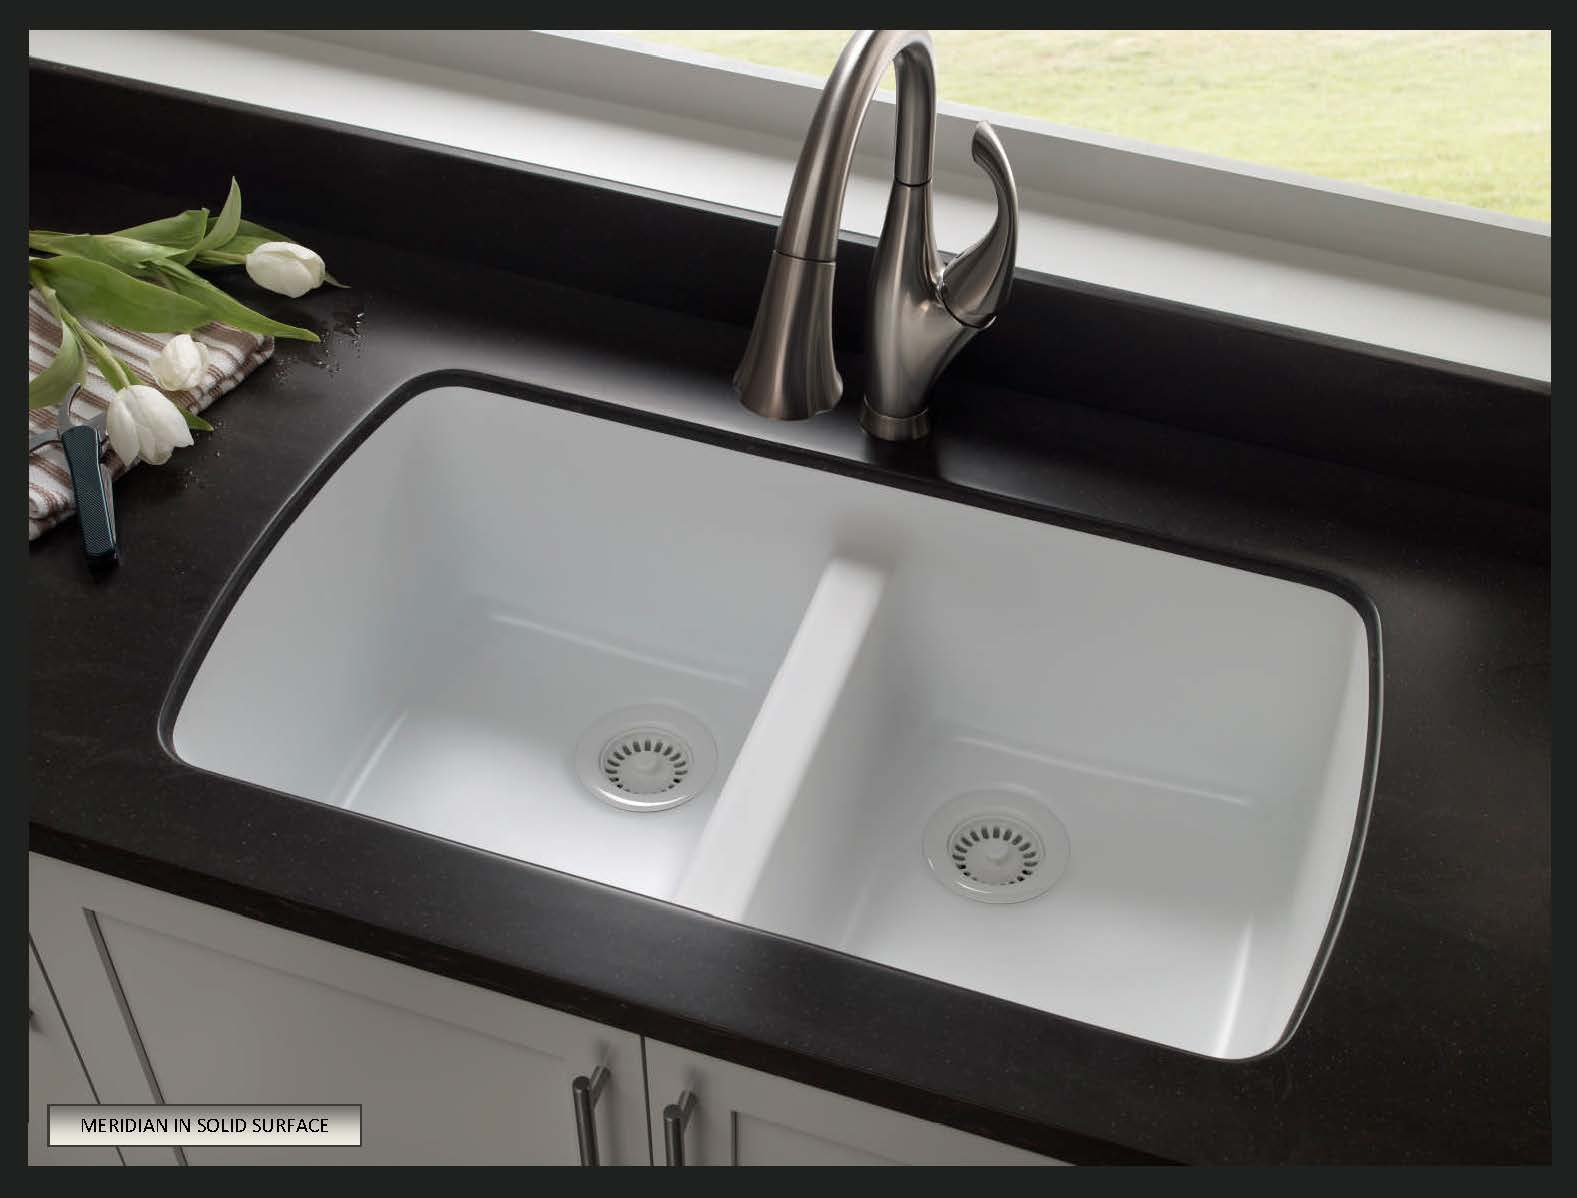 Undermount Sink Pictures : How to Choose a Sink For Solid Surface Countertops SolidSurface.com ...